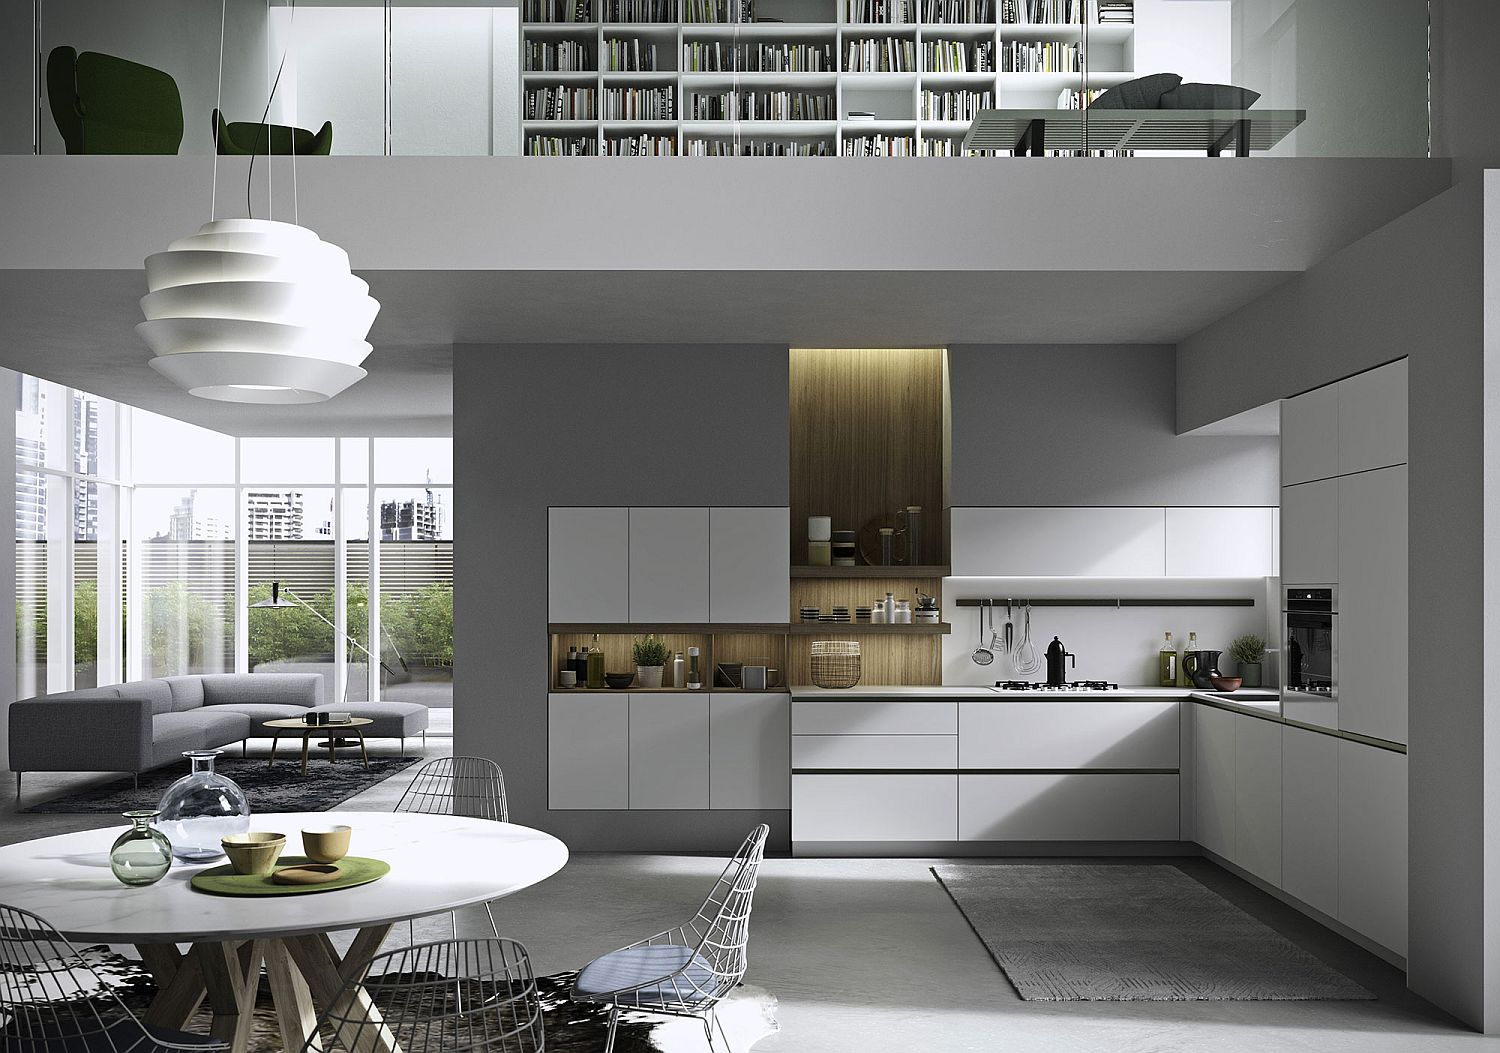 Combining the kitchen with the open plan contemporary living in style